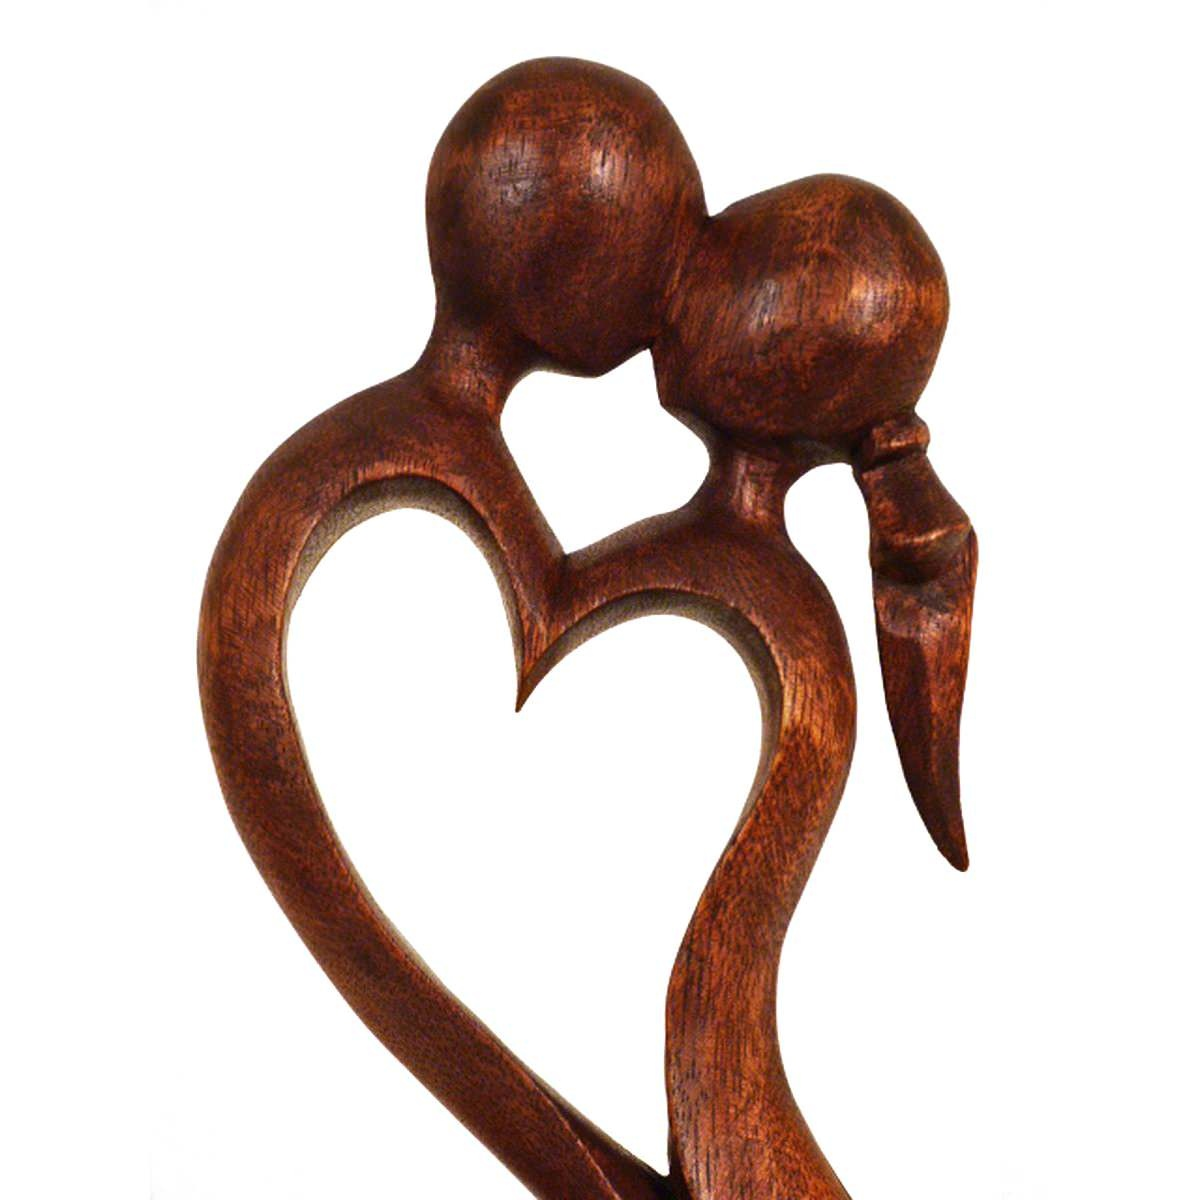 holz figur skulptur abstrakt holzfigur afrika handarbeit deko fruchtbarkeit ebay. Black Bedroom Furniture Sets. Home Design Ideas